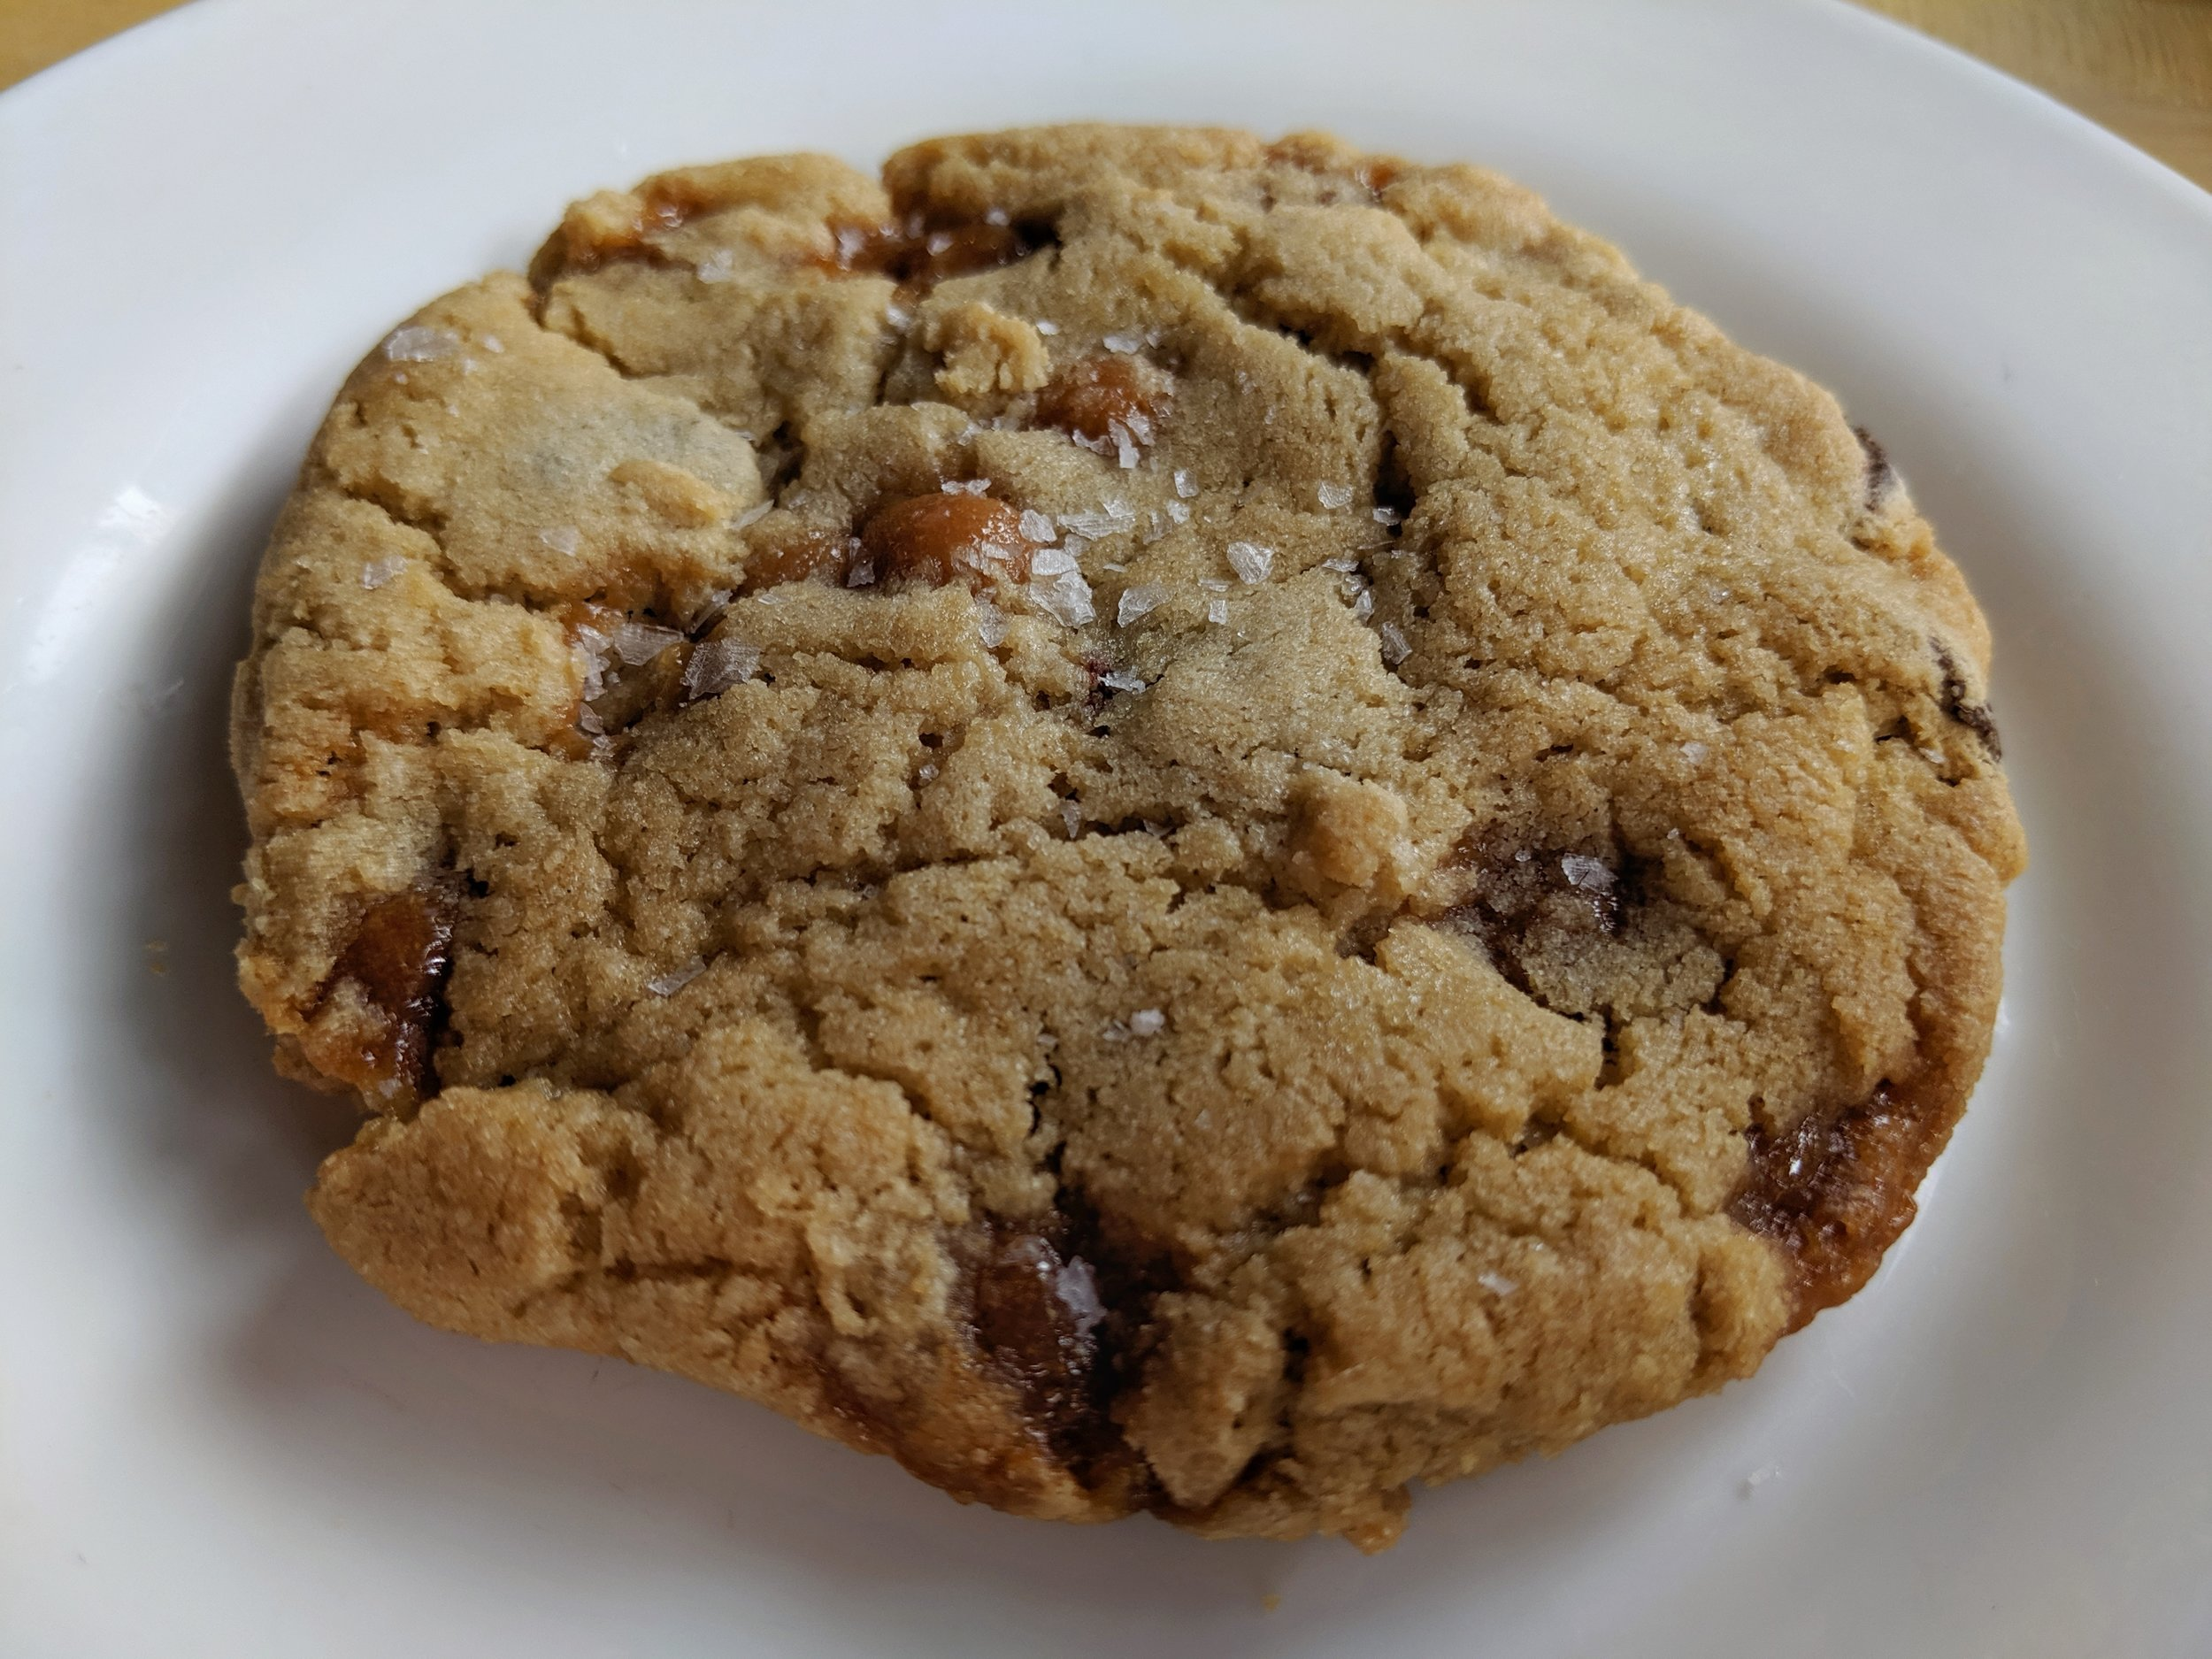 Salted Caramel & Chocolate Chip Cookie from Loaded Dough Cookie Co. (gluten-free!)